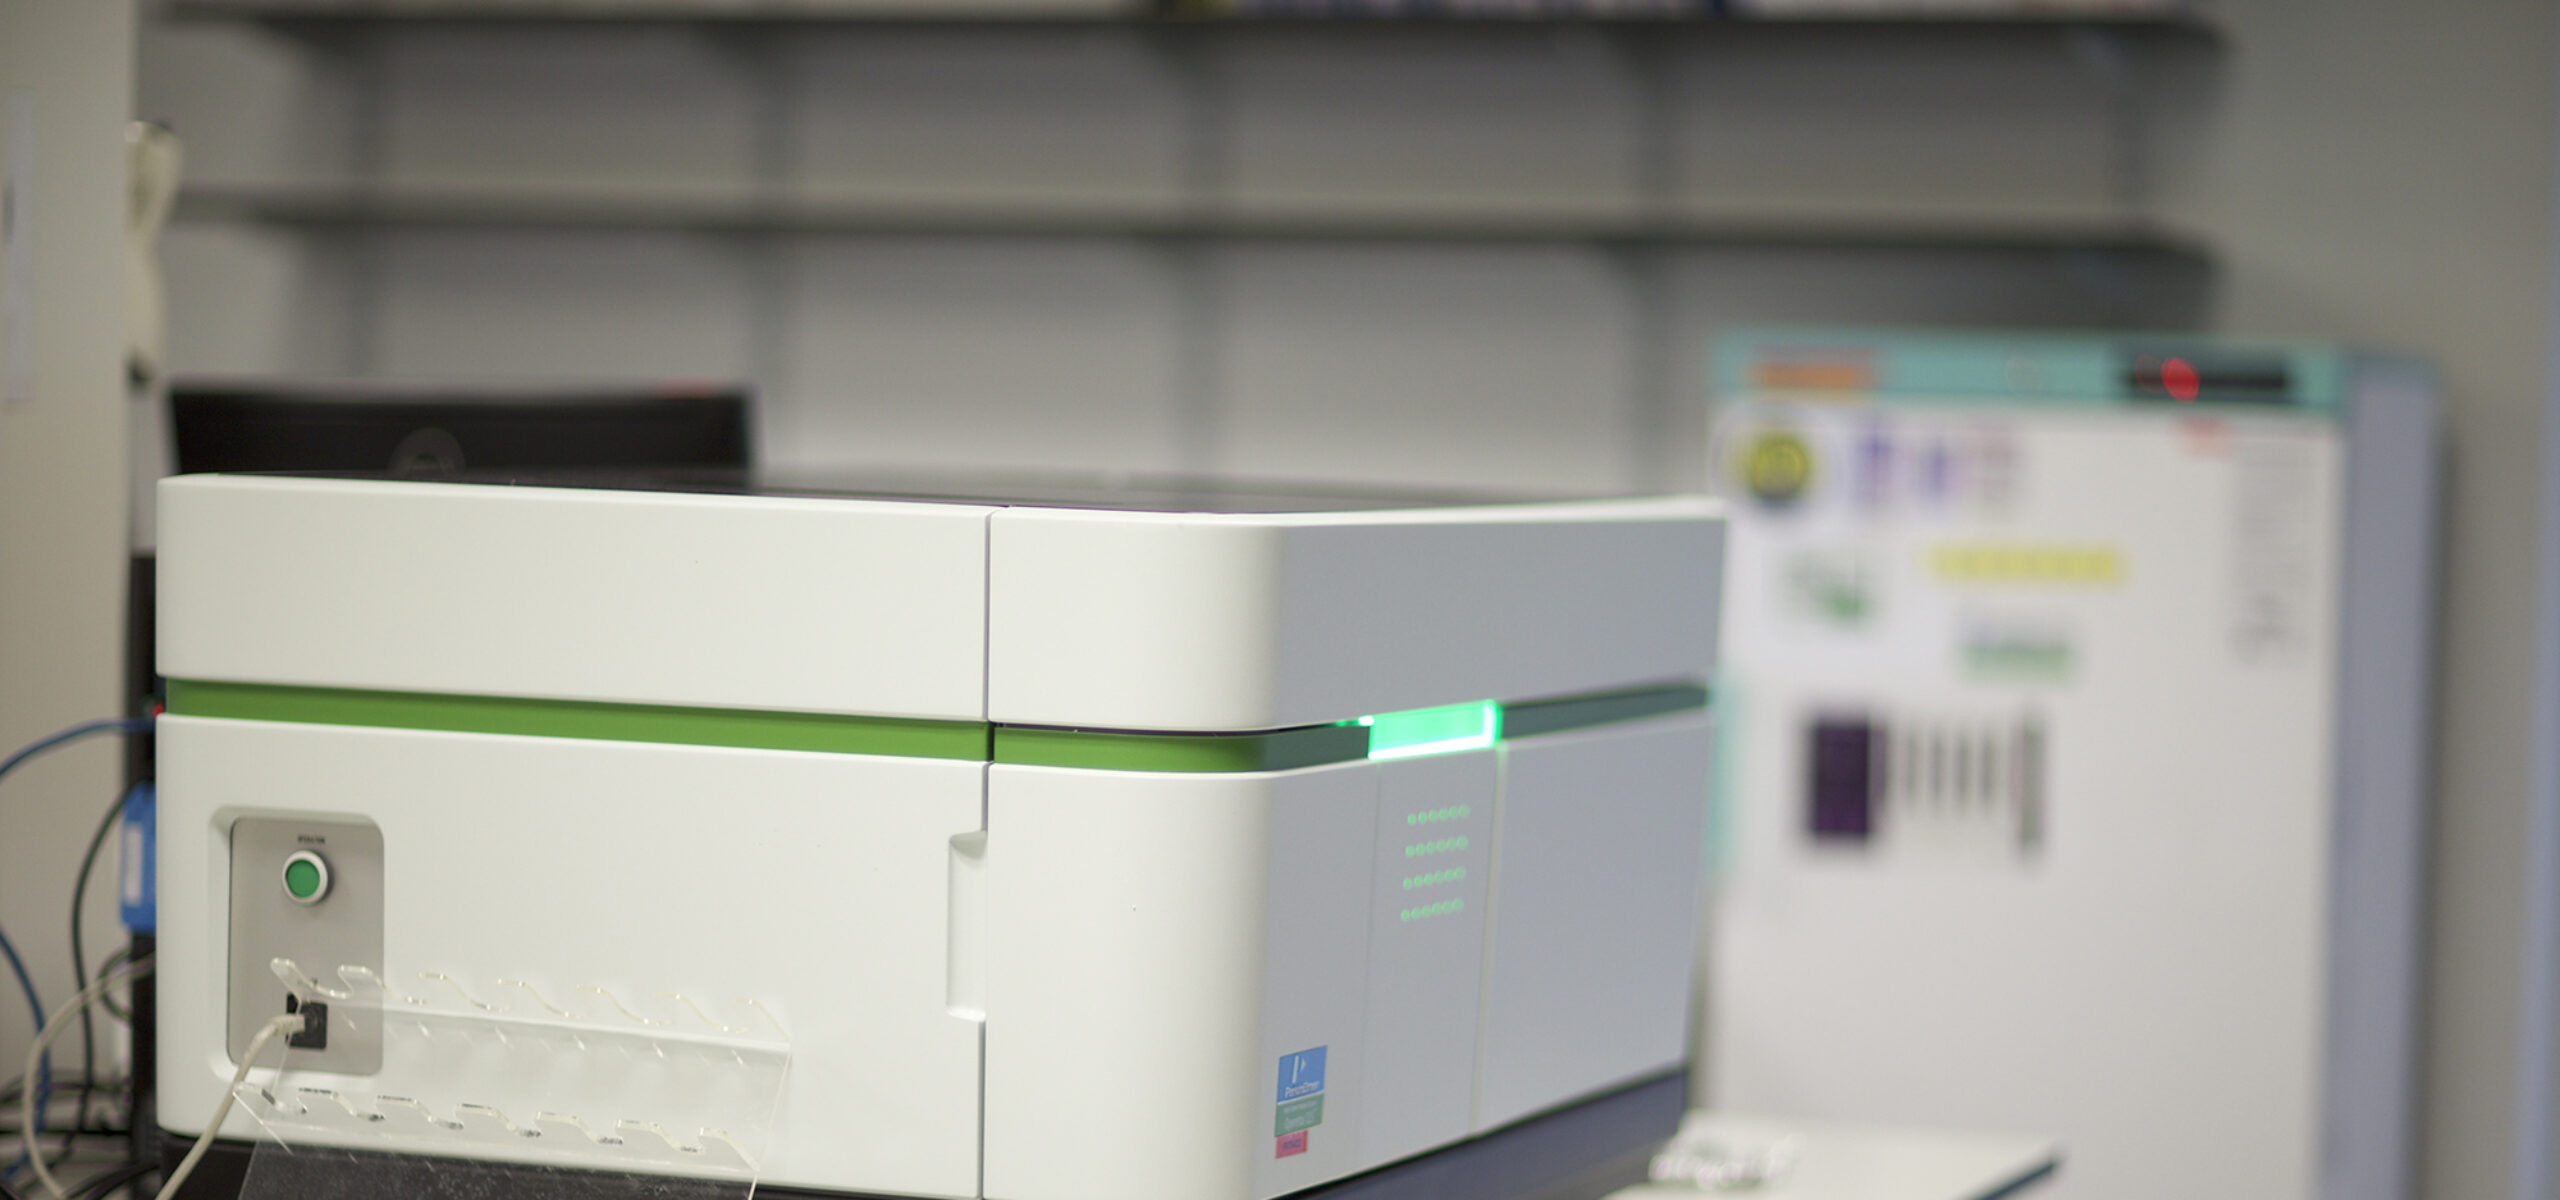 Laboratory equipment in the OCRB